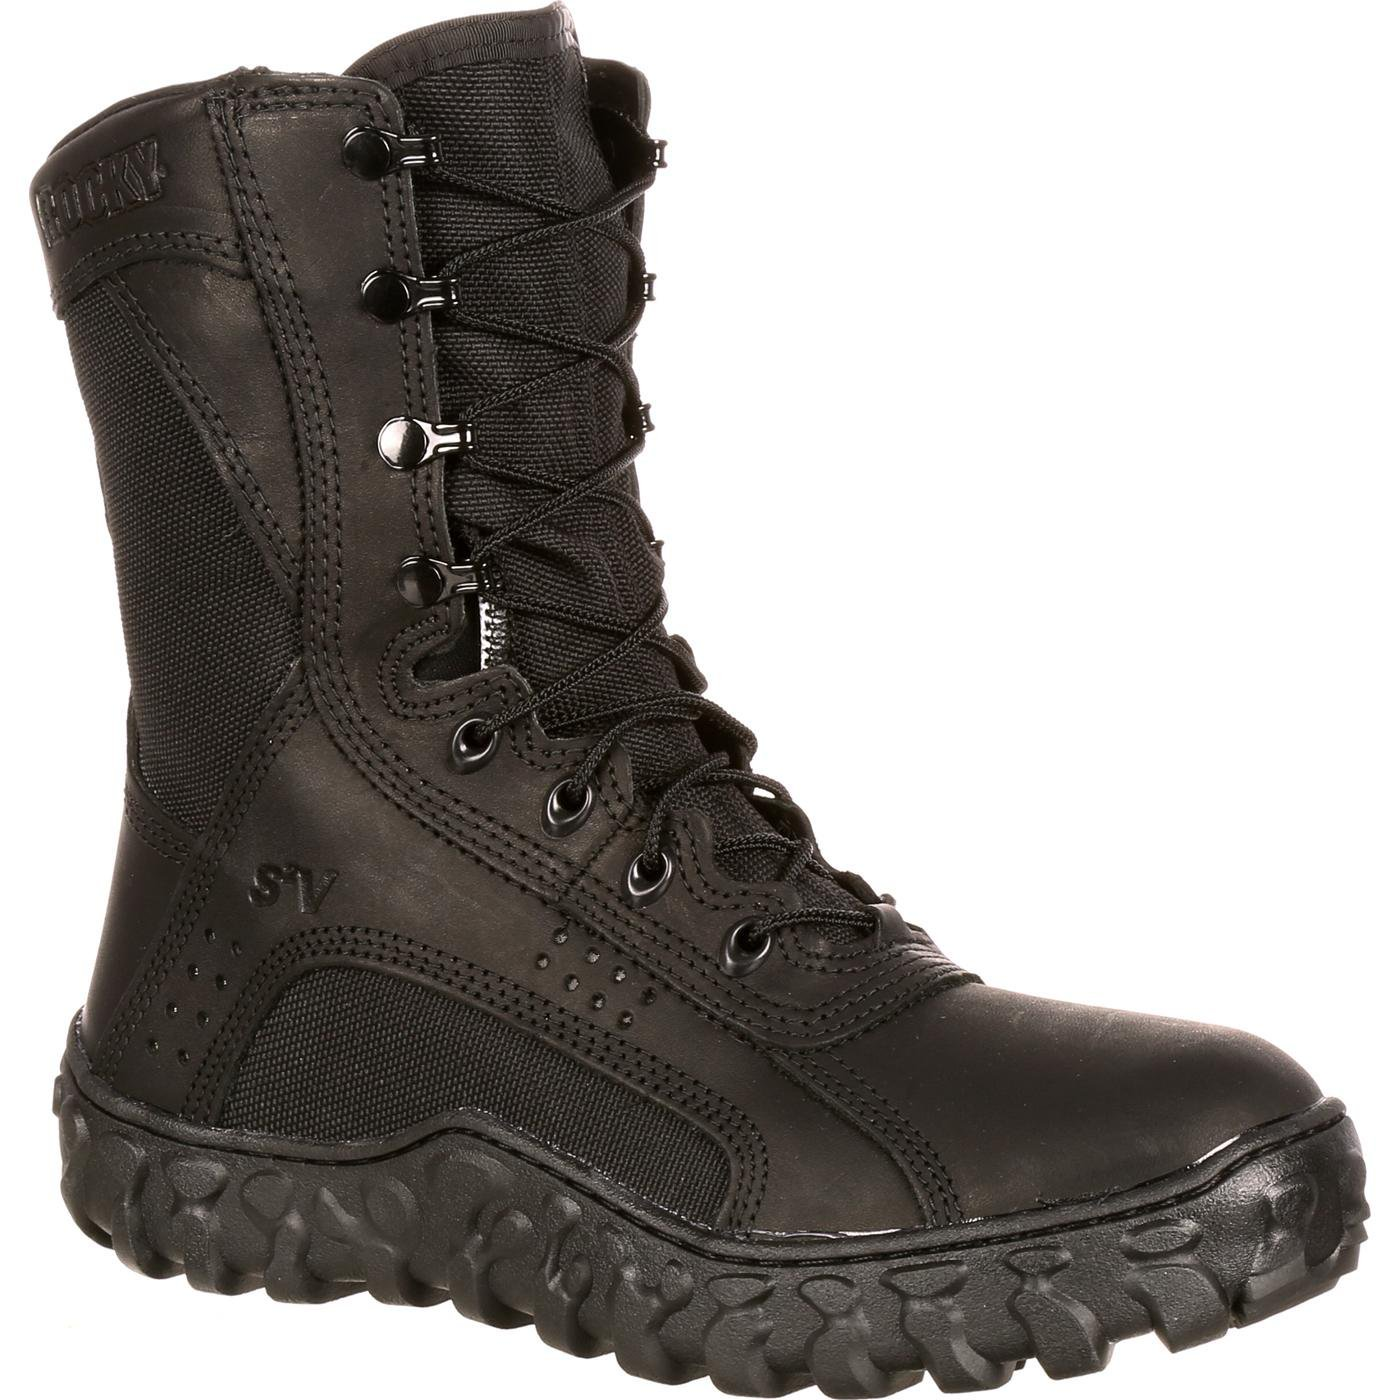 ROCKY Men's FQ0000102 Military and Tactical Boot, Black, 8 W US by ROCKY